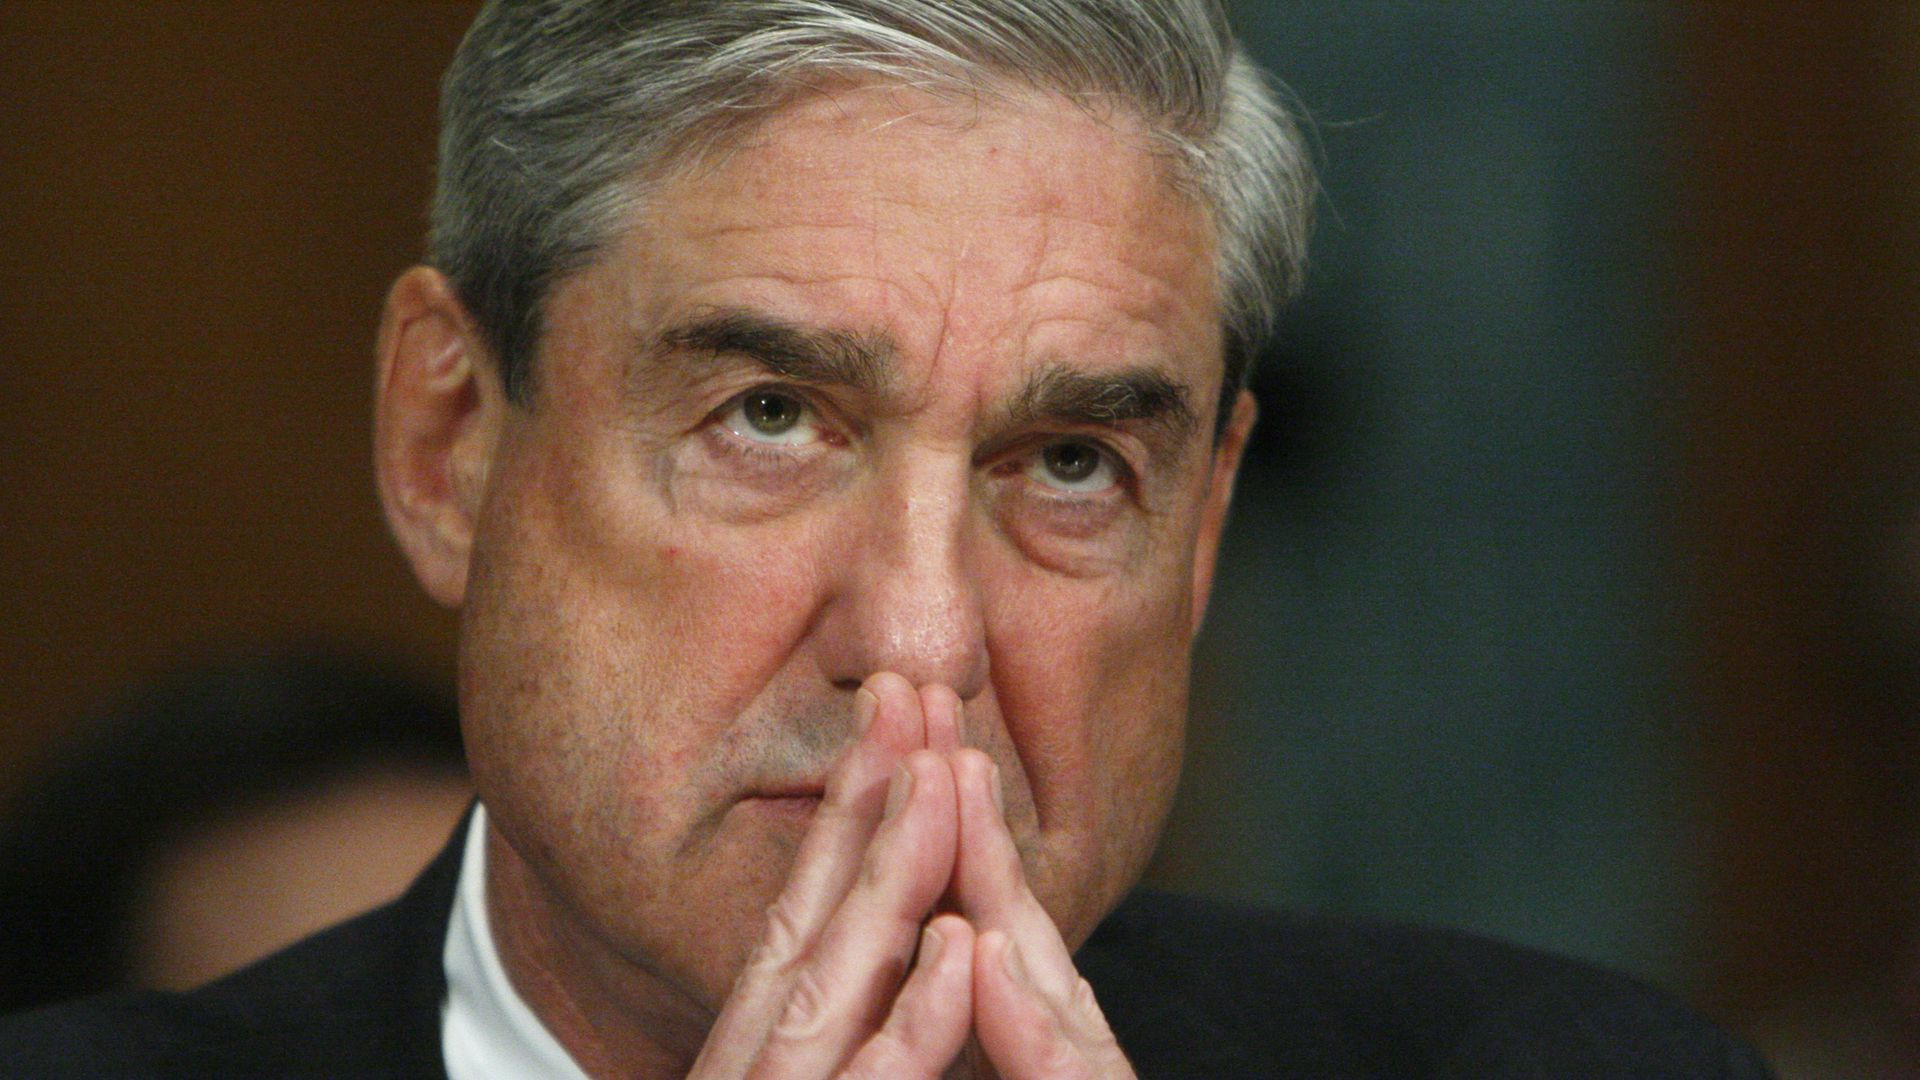 In this image, Robert Mueller listens with his fingers steepled in front of him.